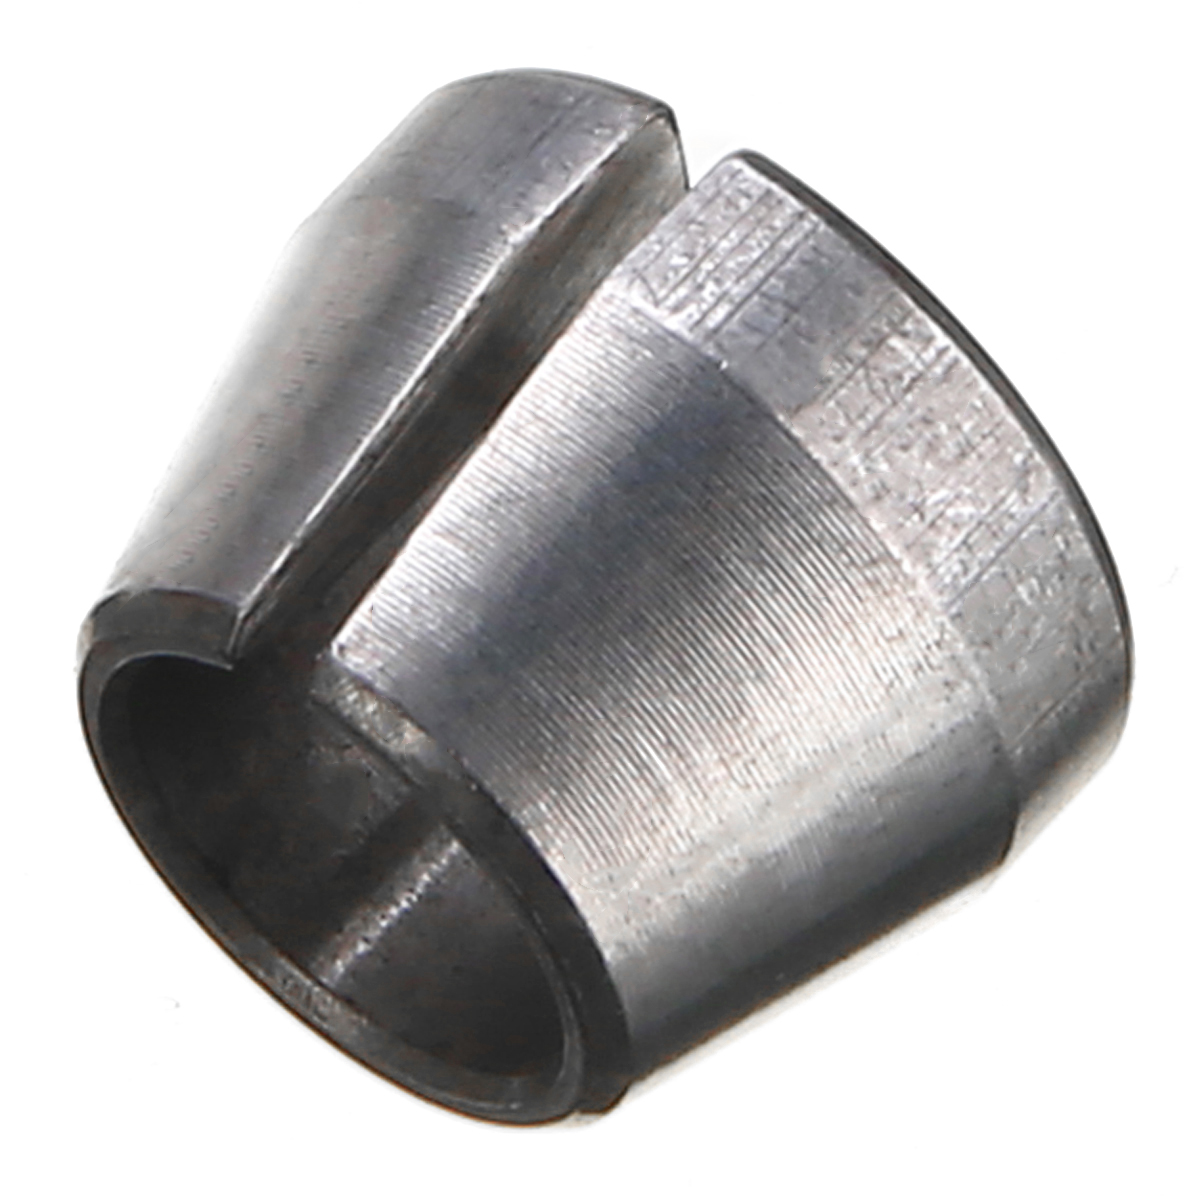 1Pcs Router Collet Cone Nut Replacement 6.35mm For Makita 763608-8 3708F 3707FC 3706 3707F 3705